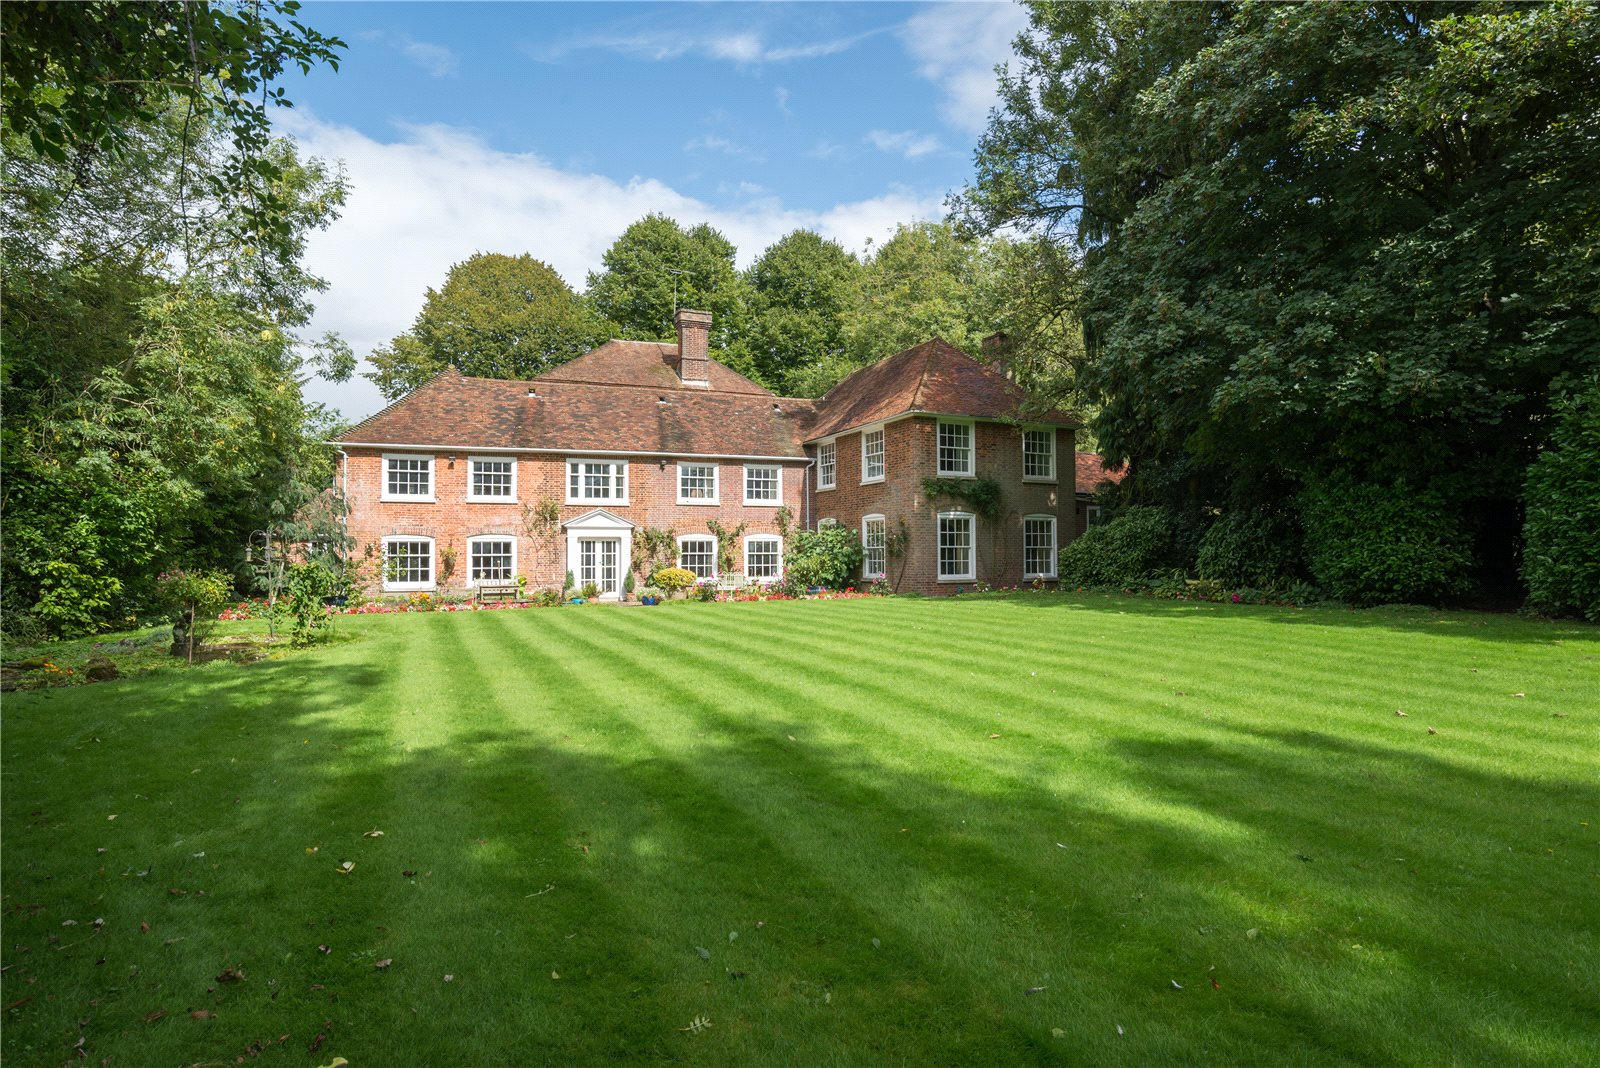 Single Family Home for Sale at The Street, East Brabourne, Ashford, Kent, TN25 Ashford, England